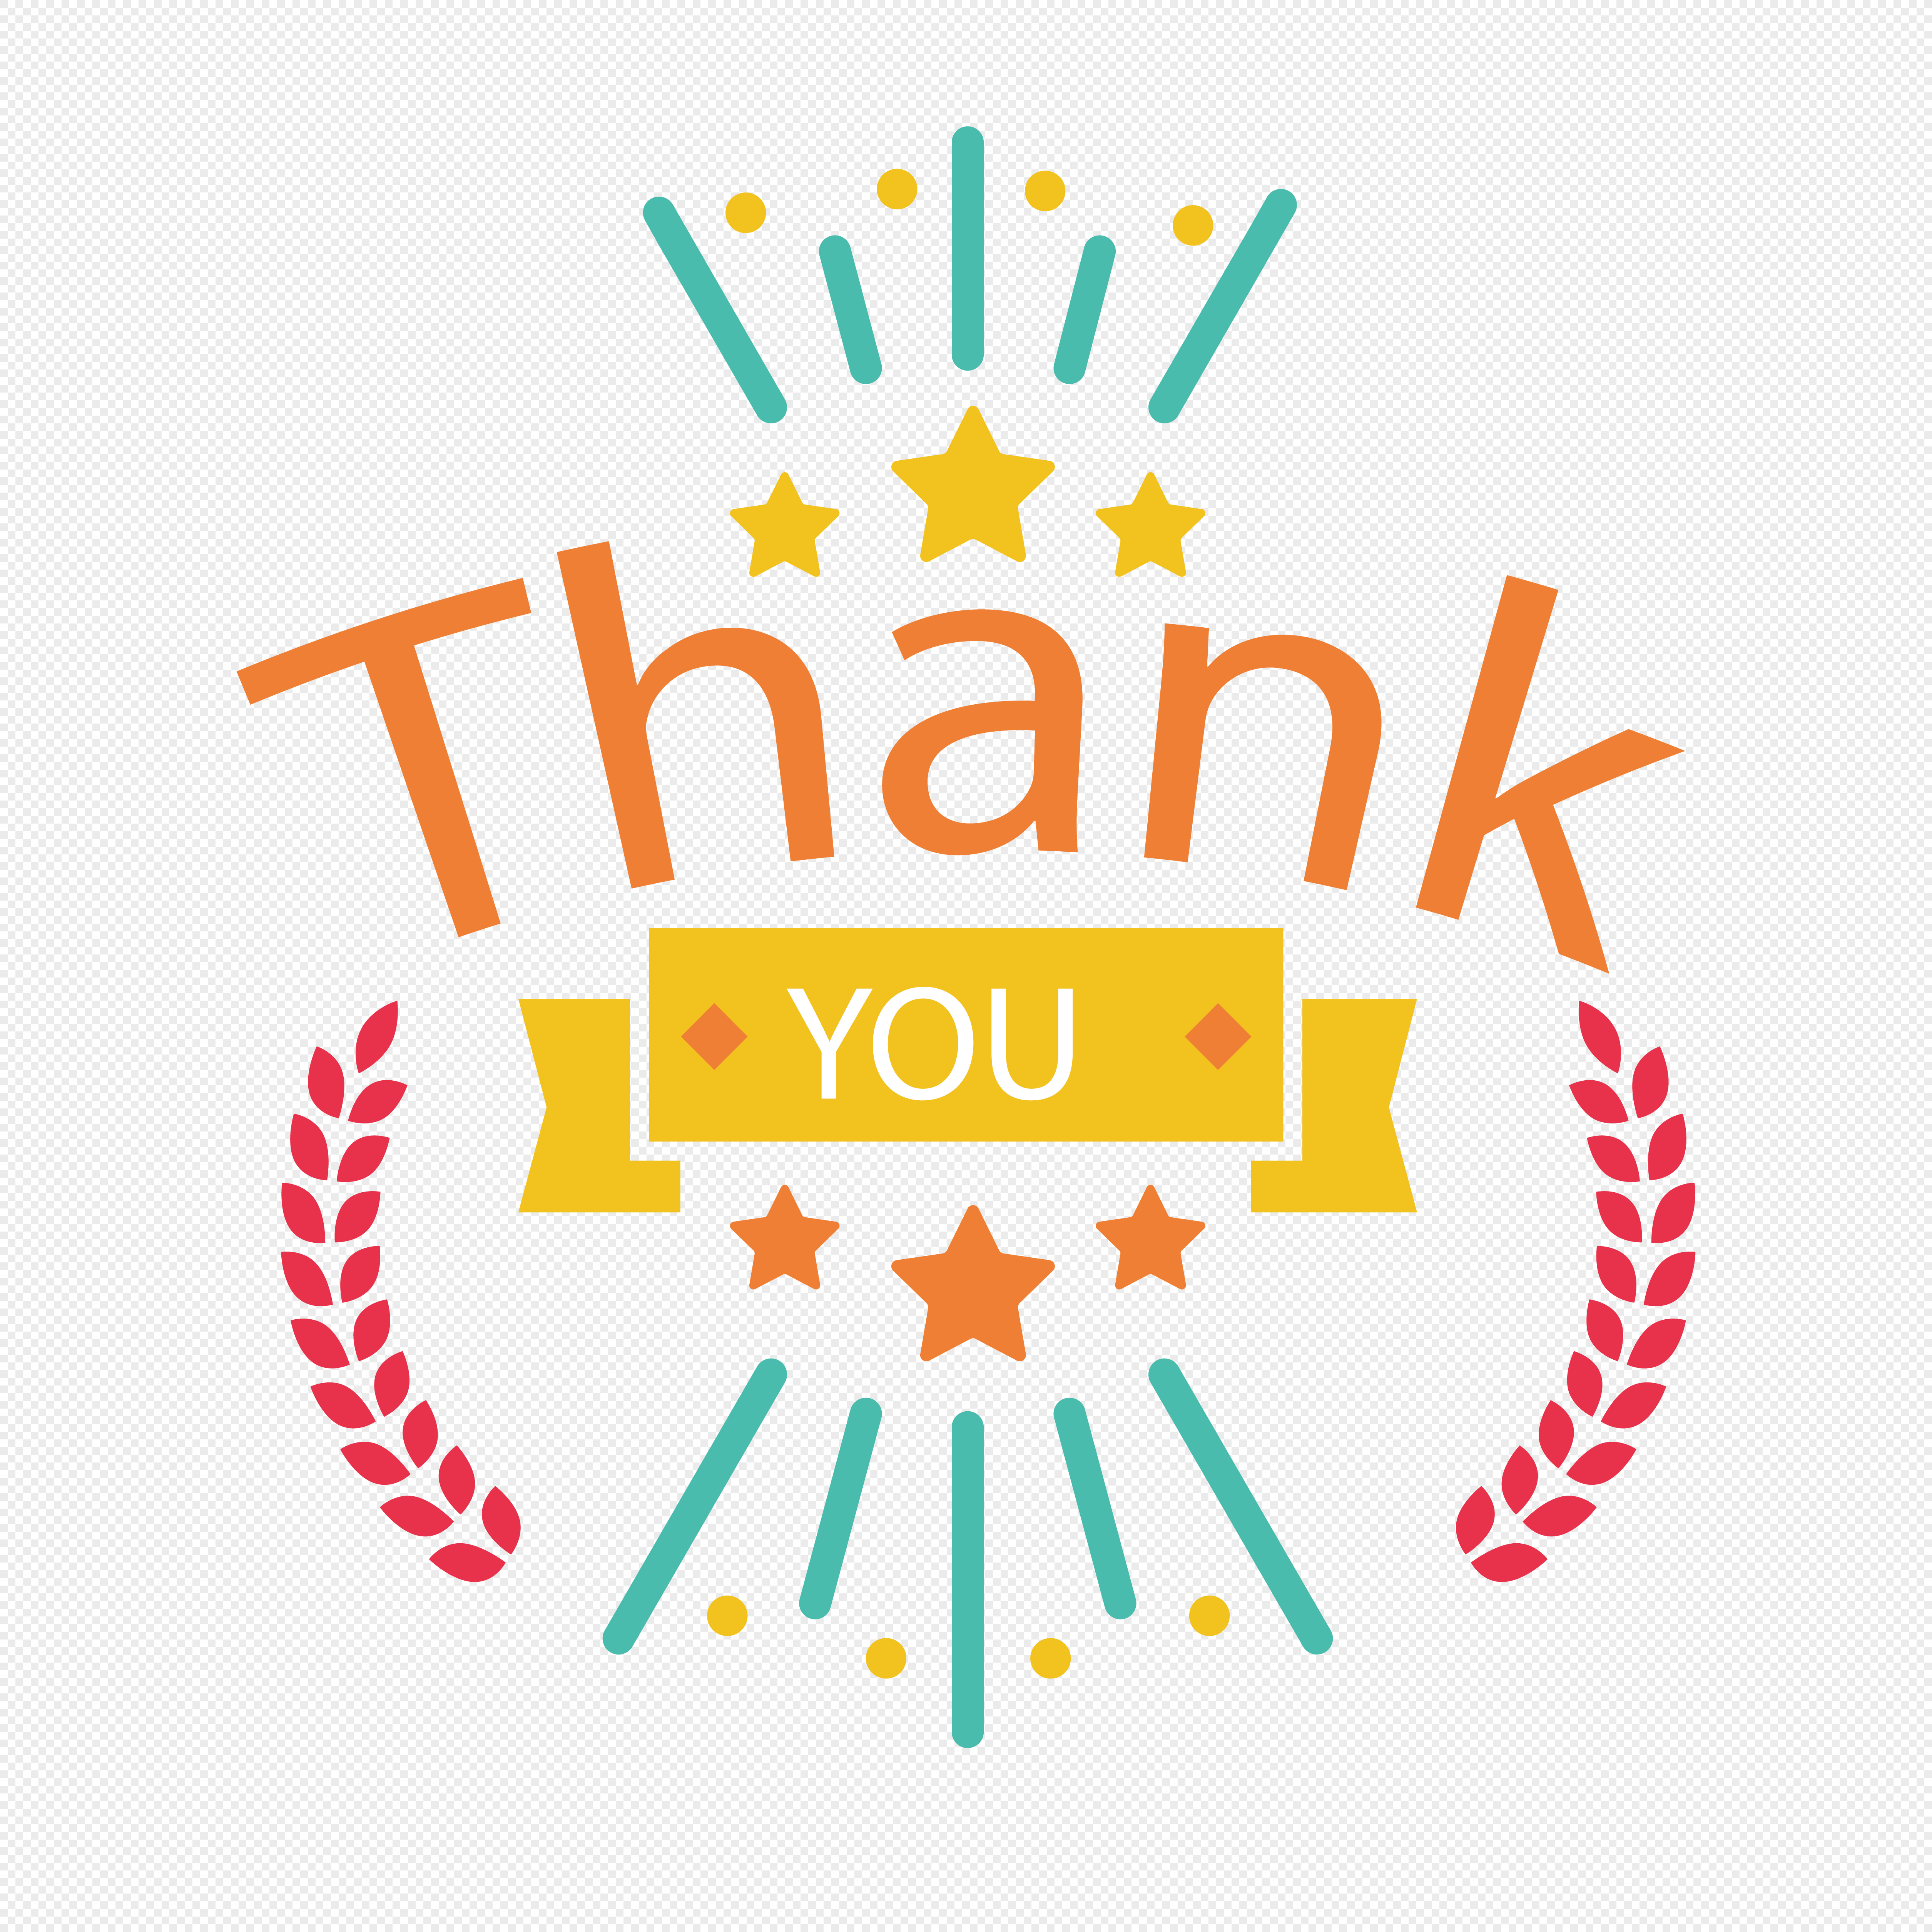 thank you label png image picture free download 400499515